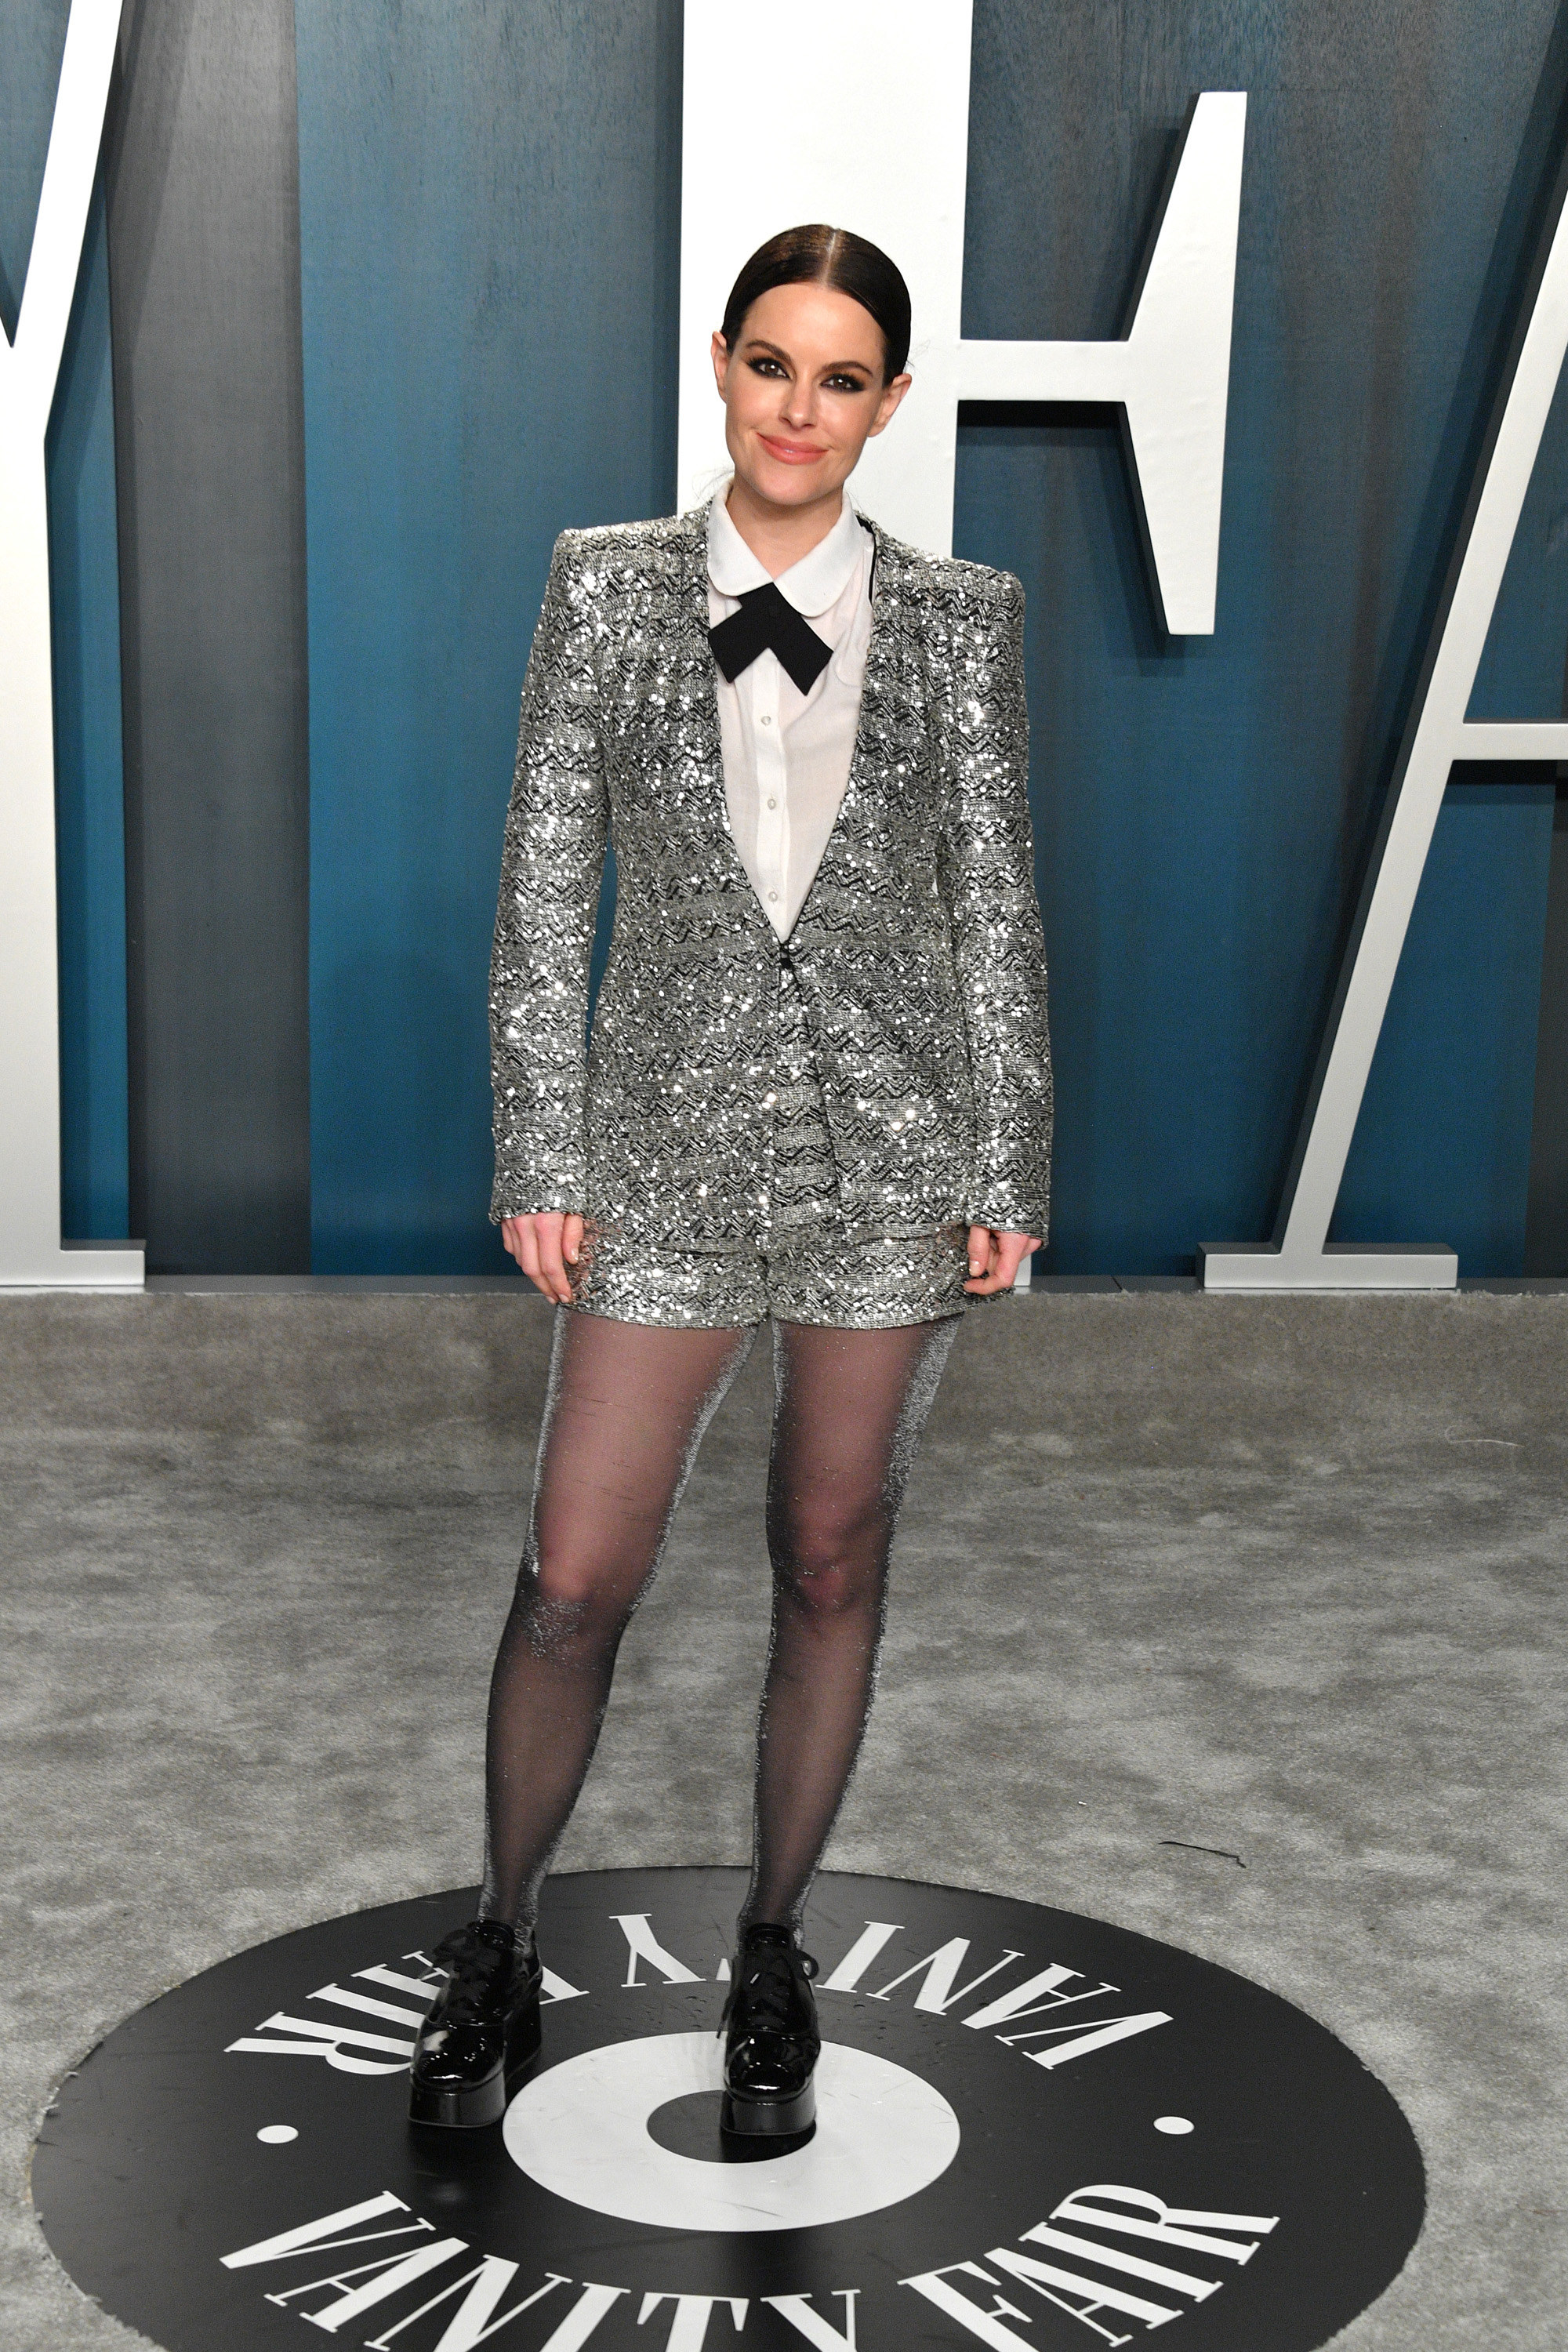 Emily posing at the Vanity Fair Oscar party in a sequined suit with matching shorts, tights, and platform ankle boots